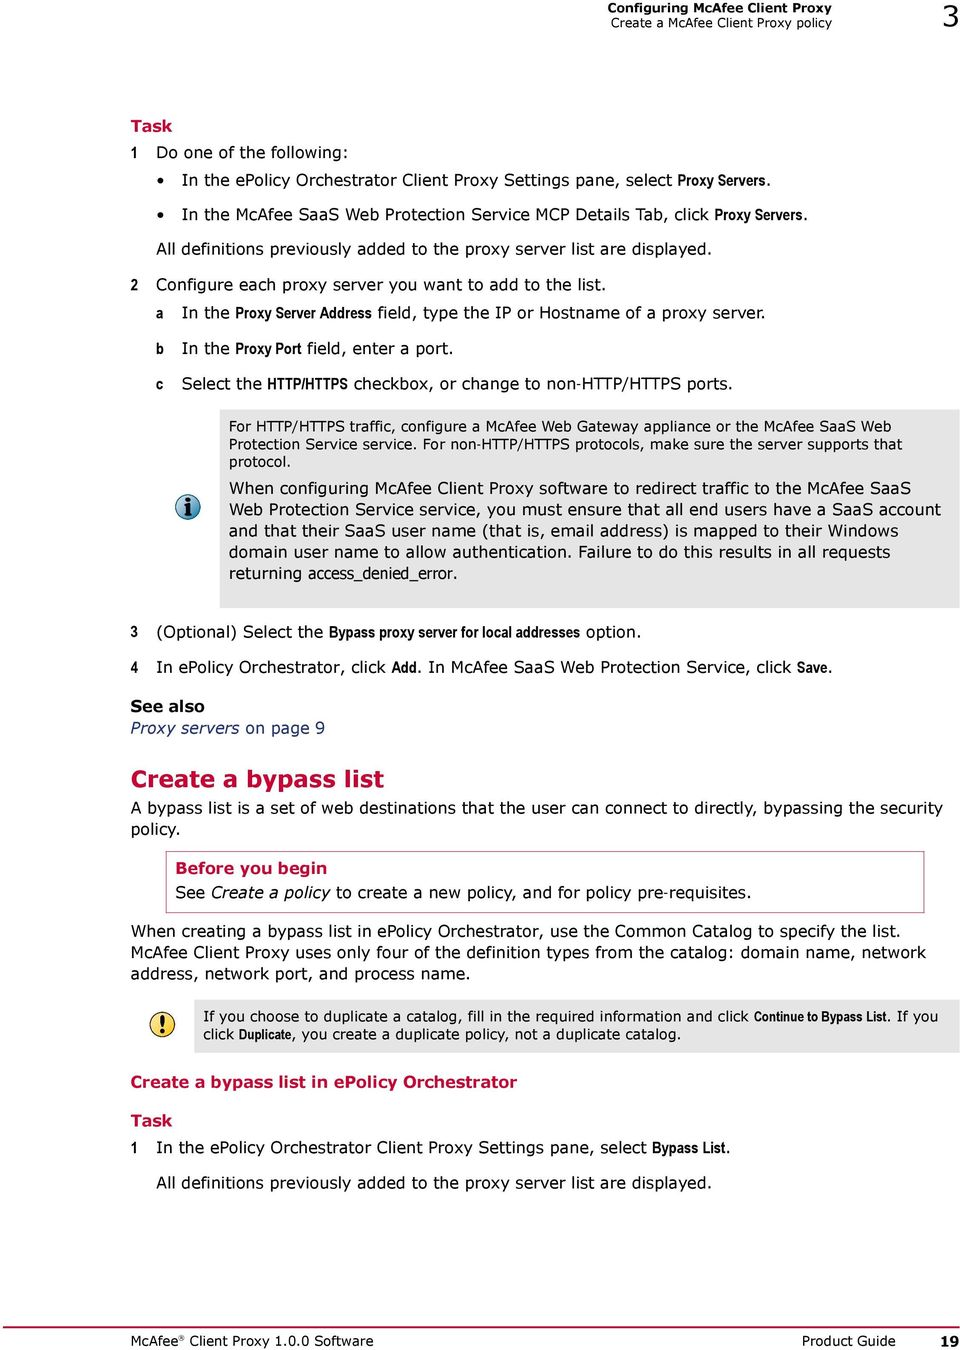 McAfee Client Proxy Software - PDF